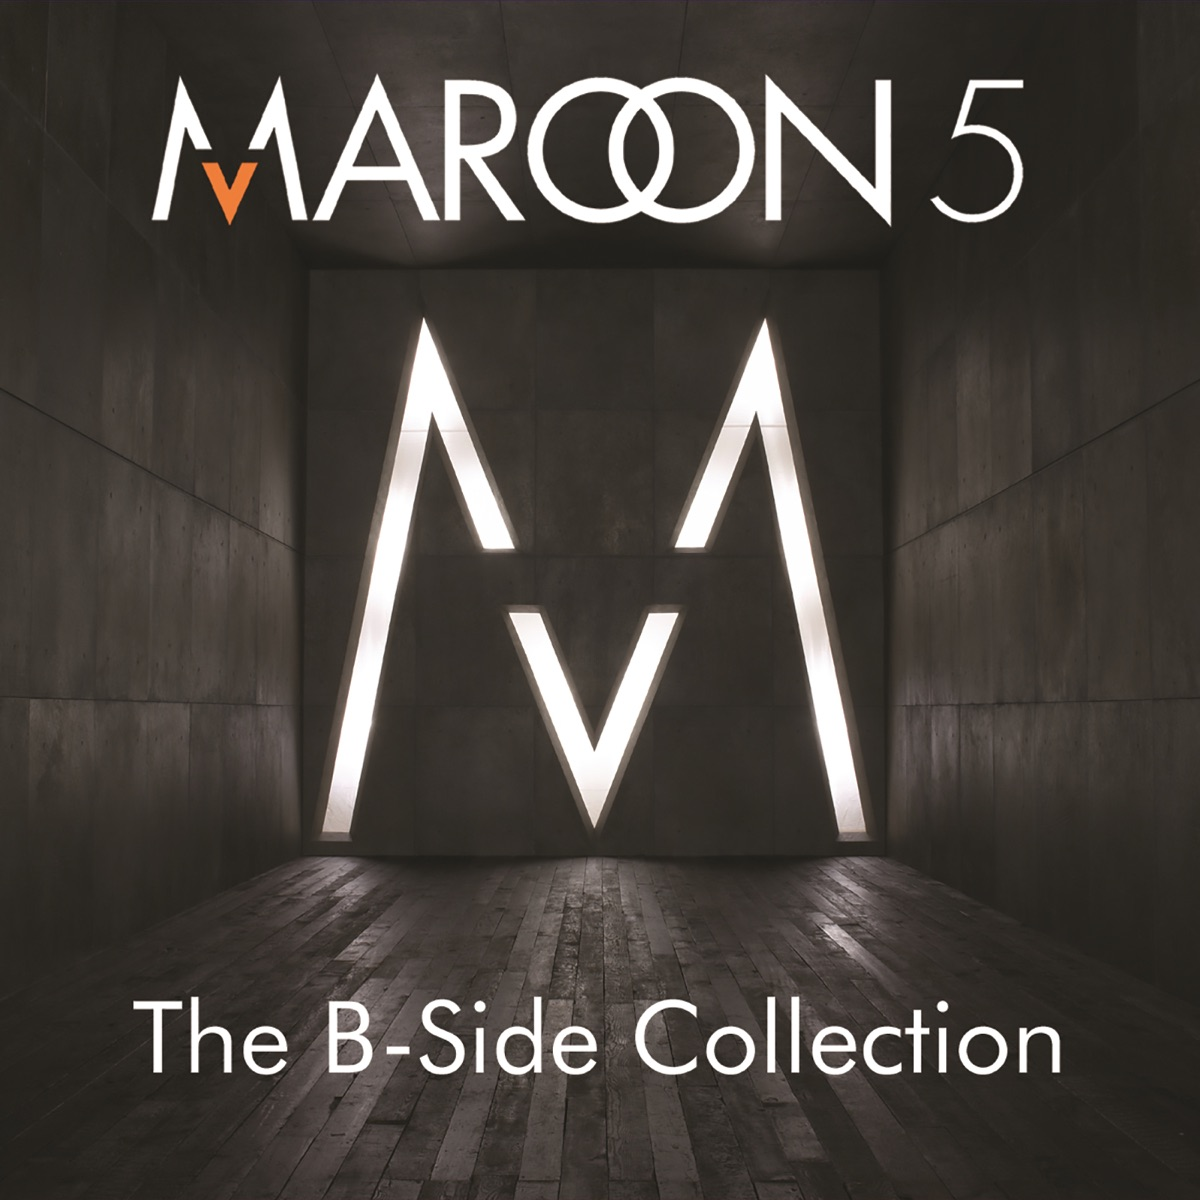 The B-Side Collection - EP Maroon 5 CD cover